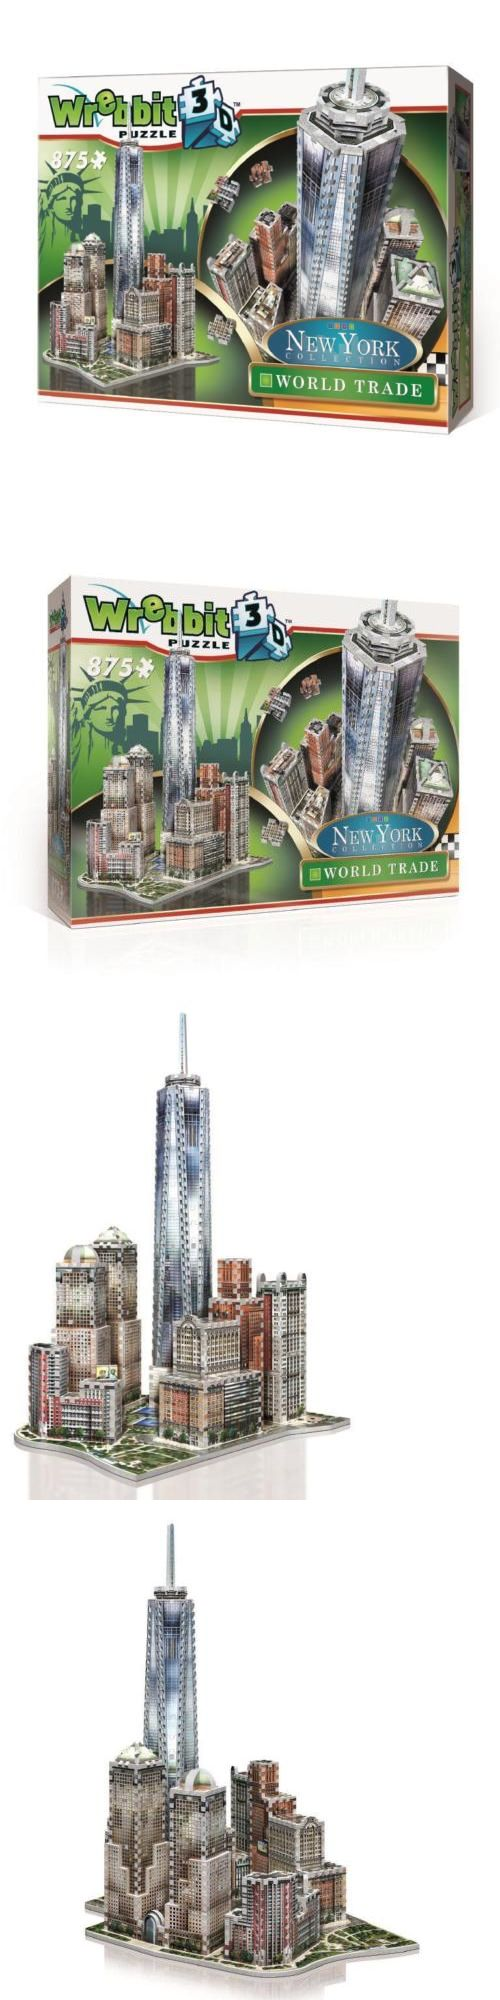 3D Puzzles 19186 Wrebbit Puzzle New York Collection World Trade Center 875 Pcs